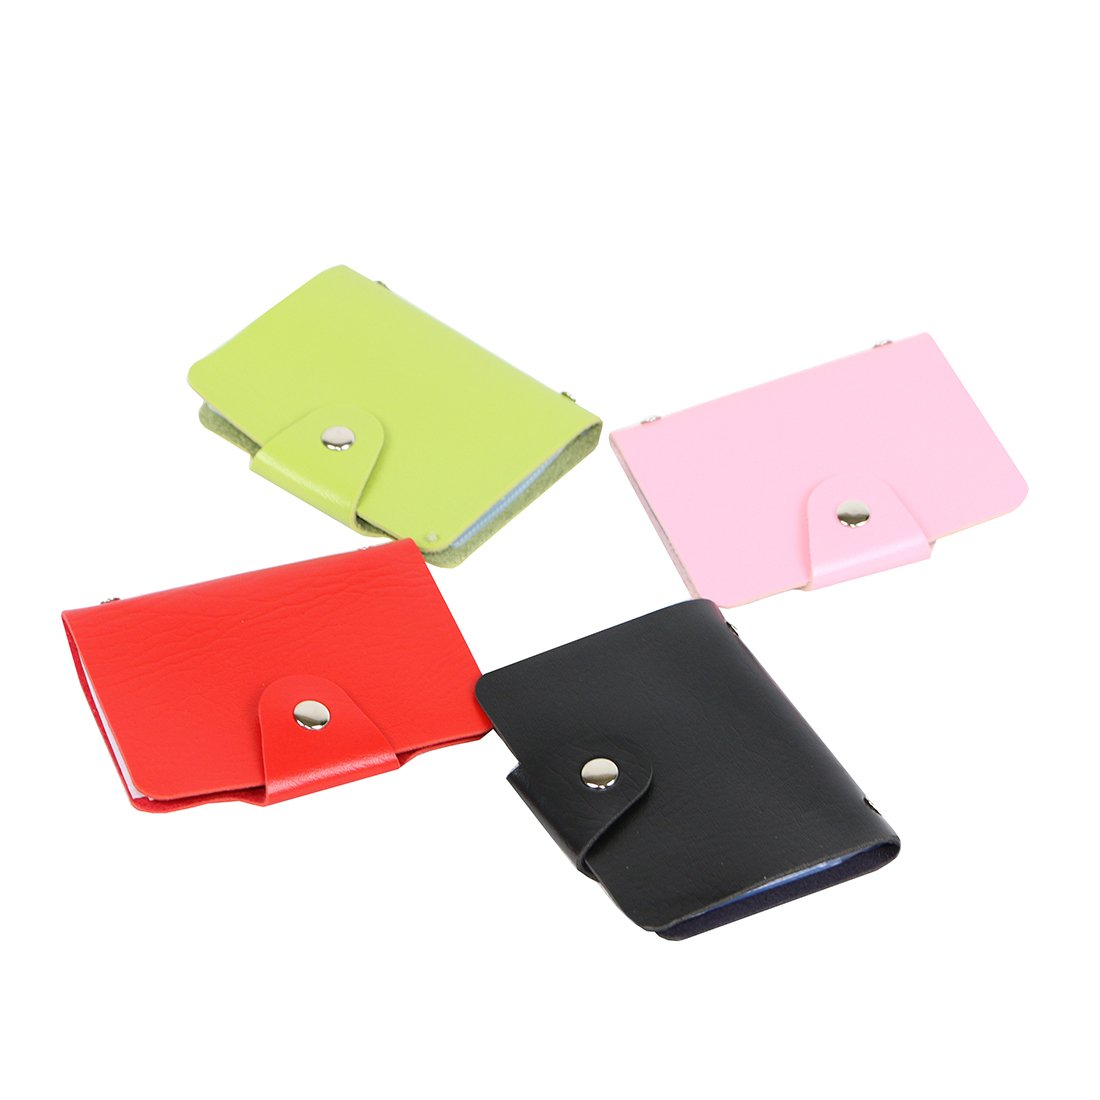 Unisex Small Leather Credit Card Holder Protector Wallet Bagwith - 12 Card Slots (pink)